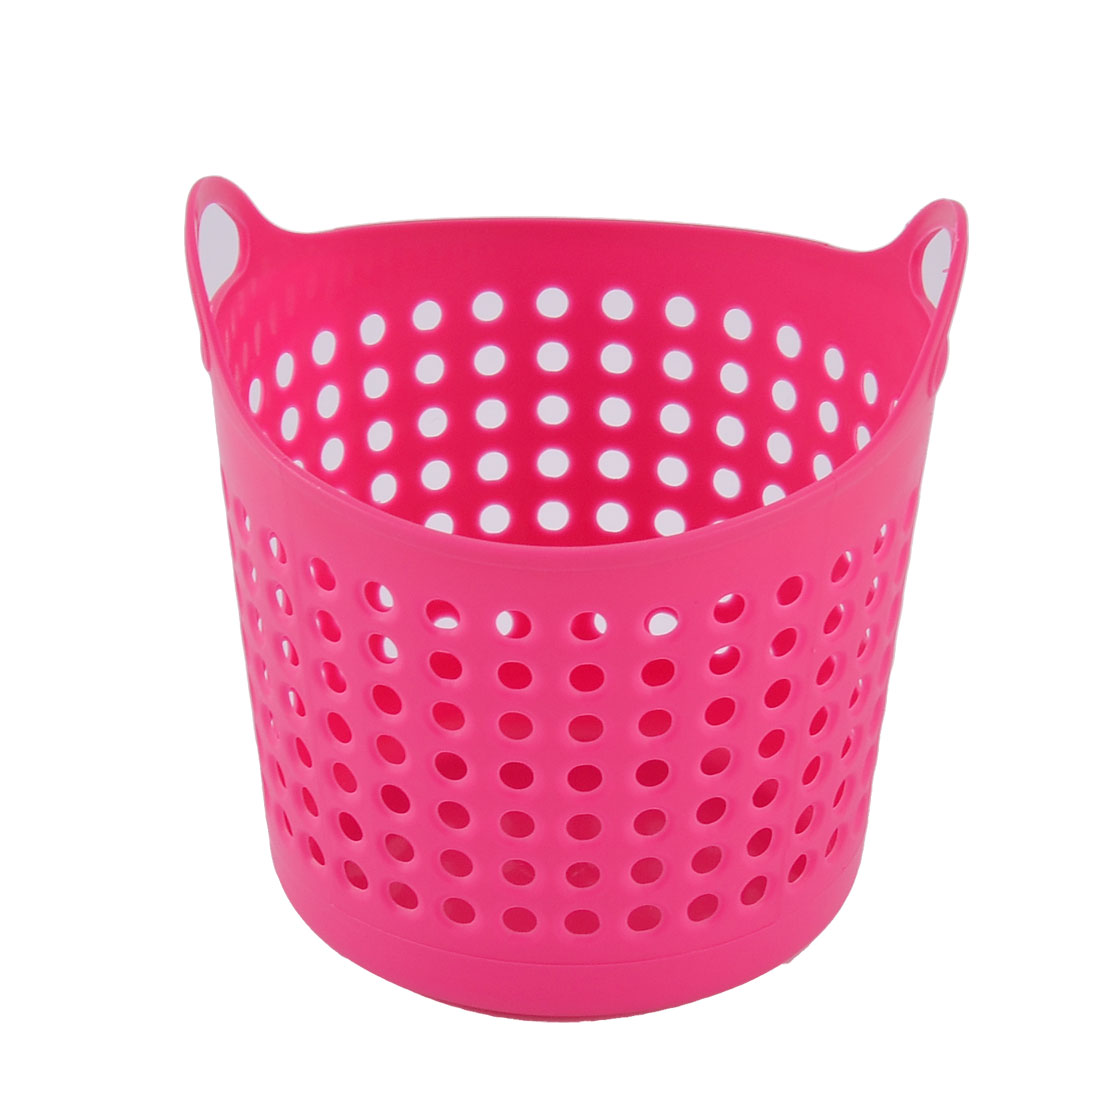 Home Office Desk Plastic Hollow Out Hanging Holder Storage Box Bucket Container Basket Dark Pink